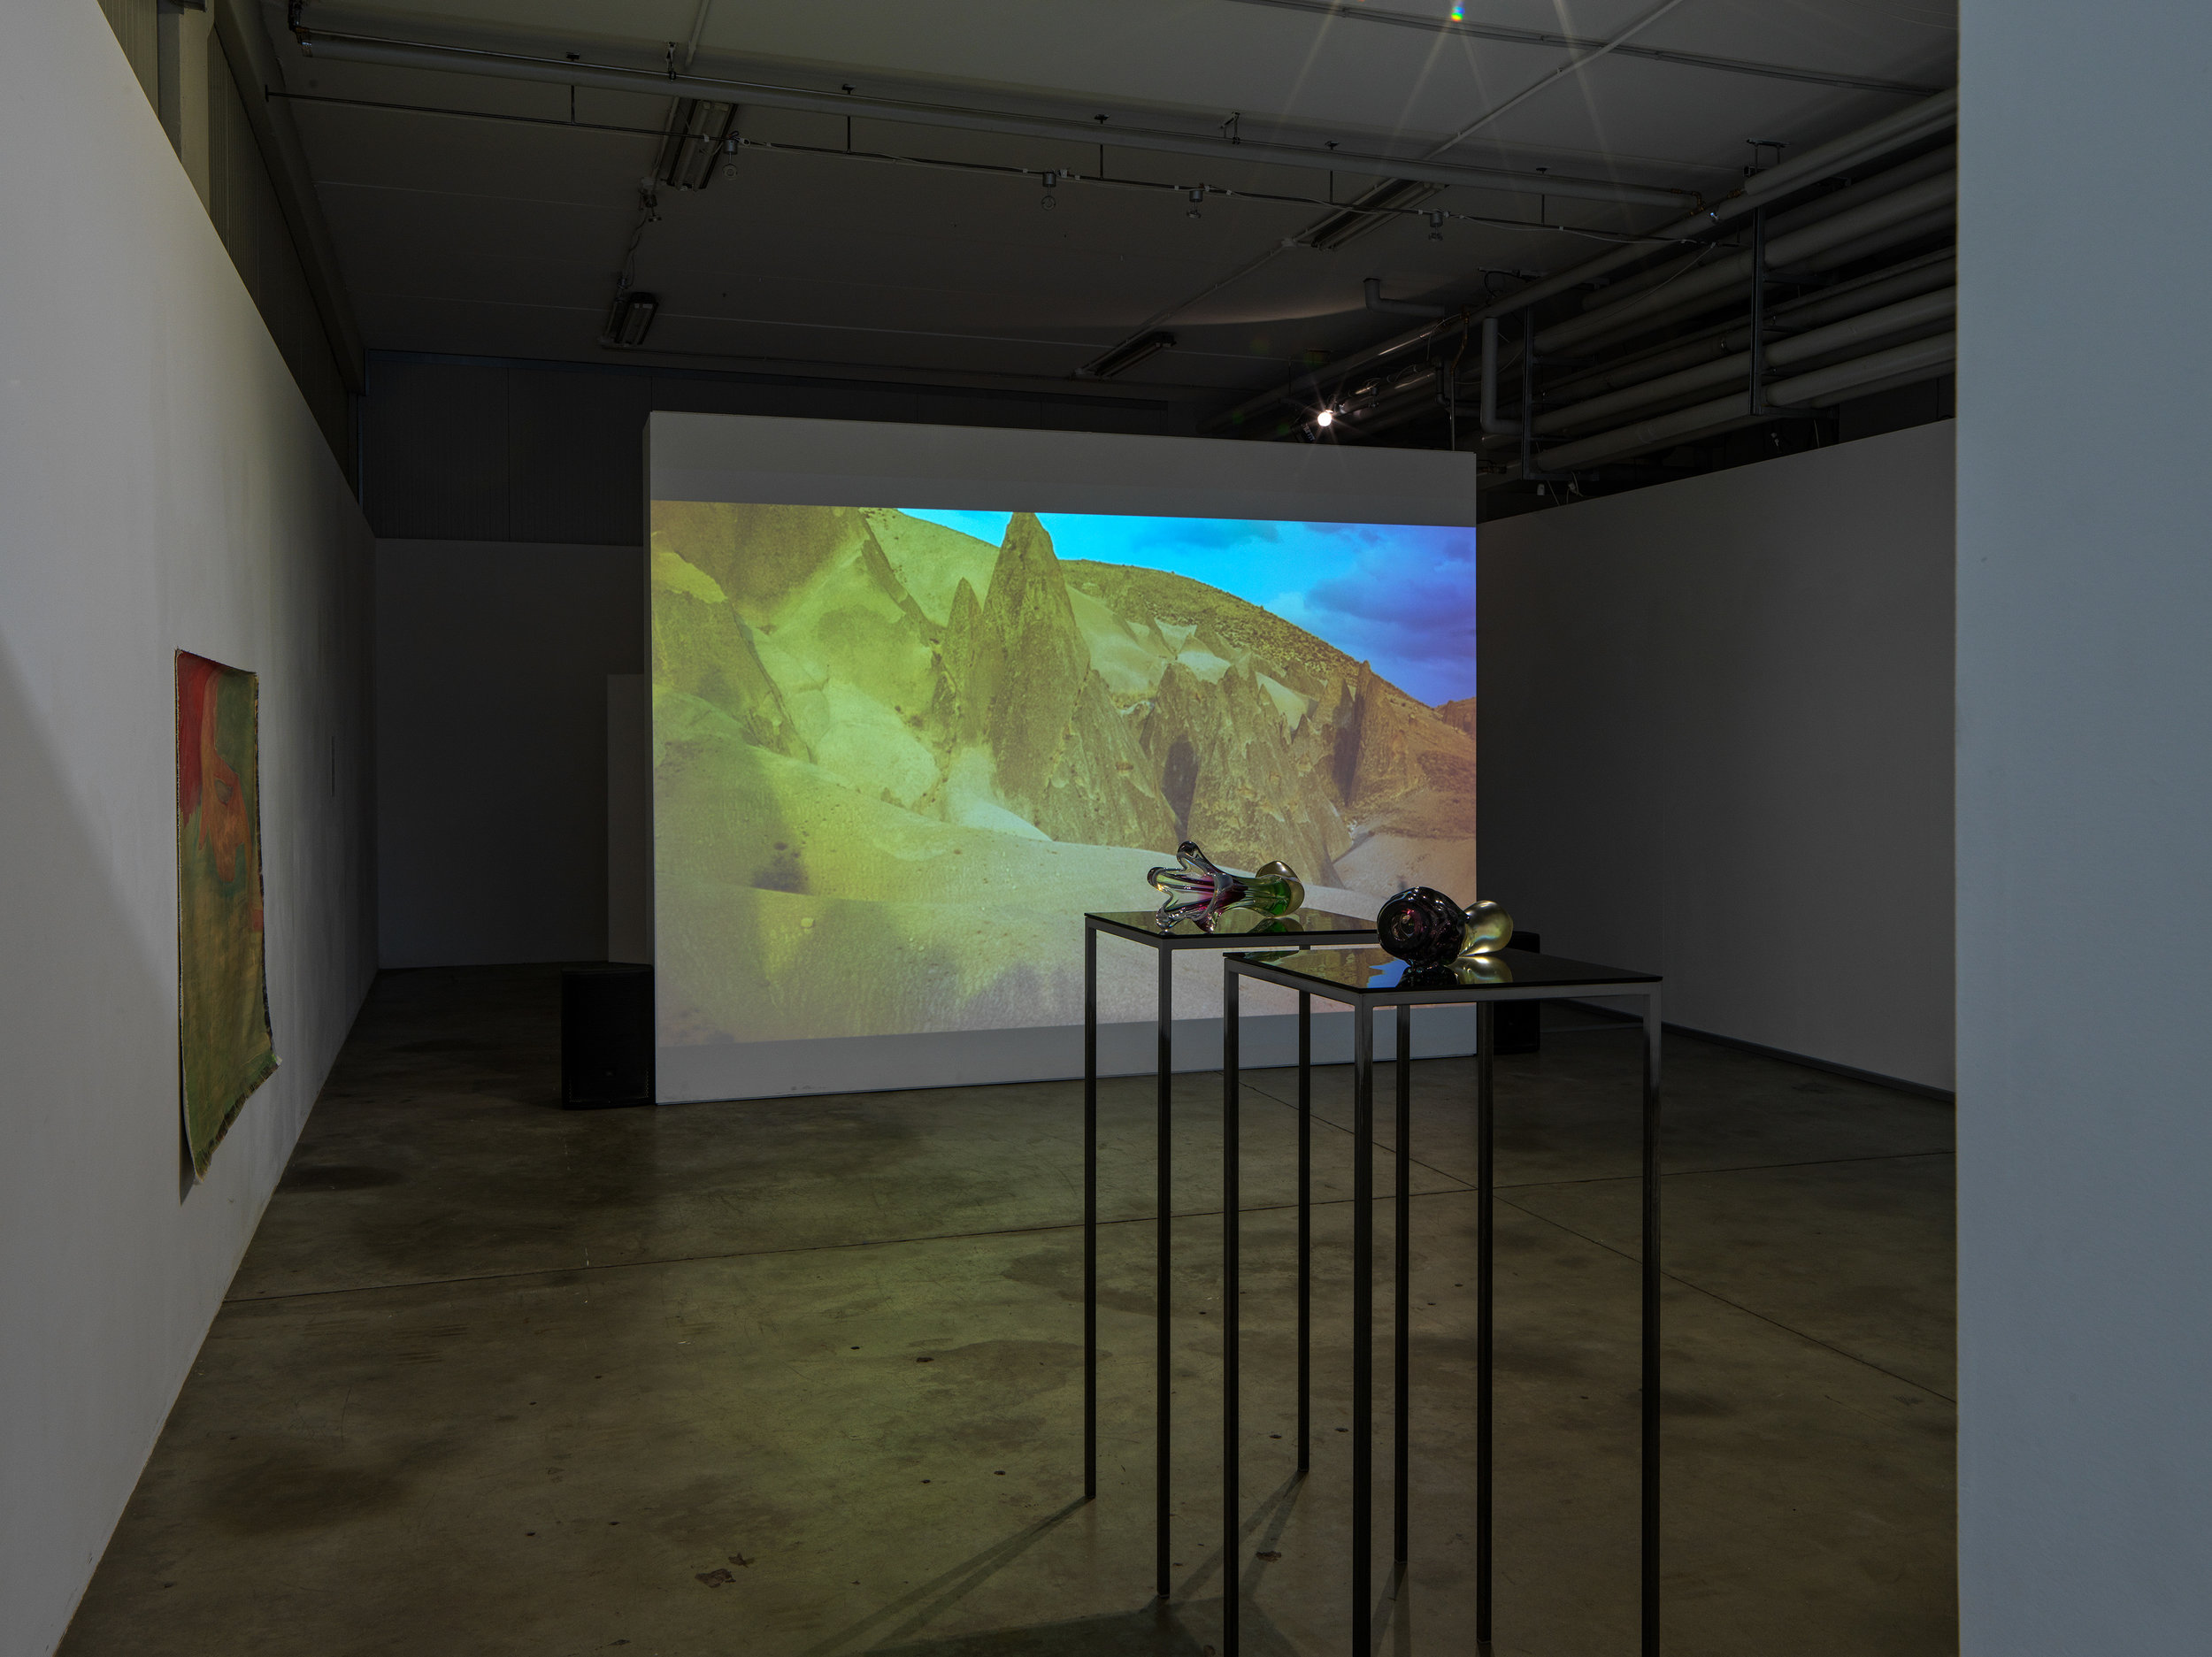 installation_view_Ursula_Mayer_Barbara_Tavella_photo_G.R.Wett.jpg